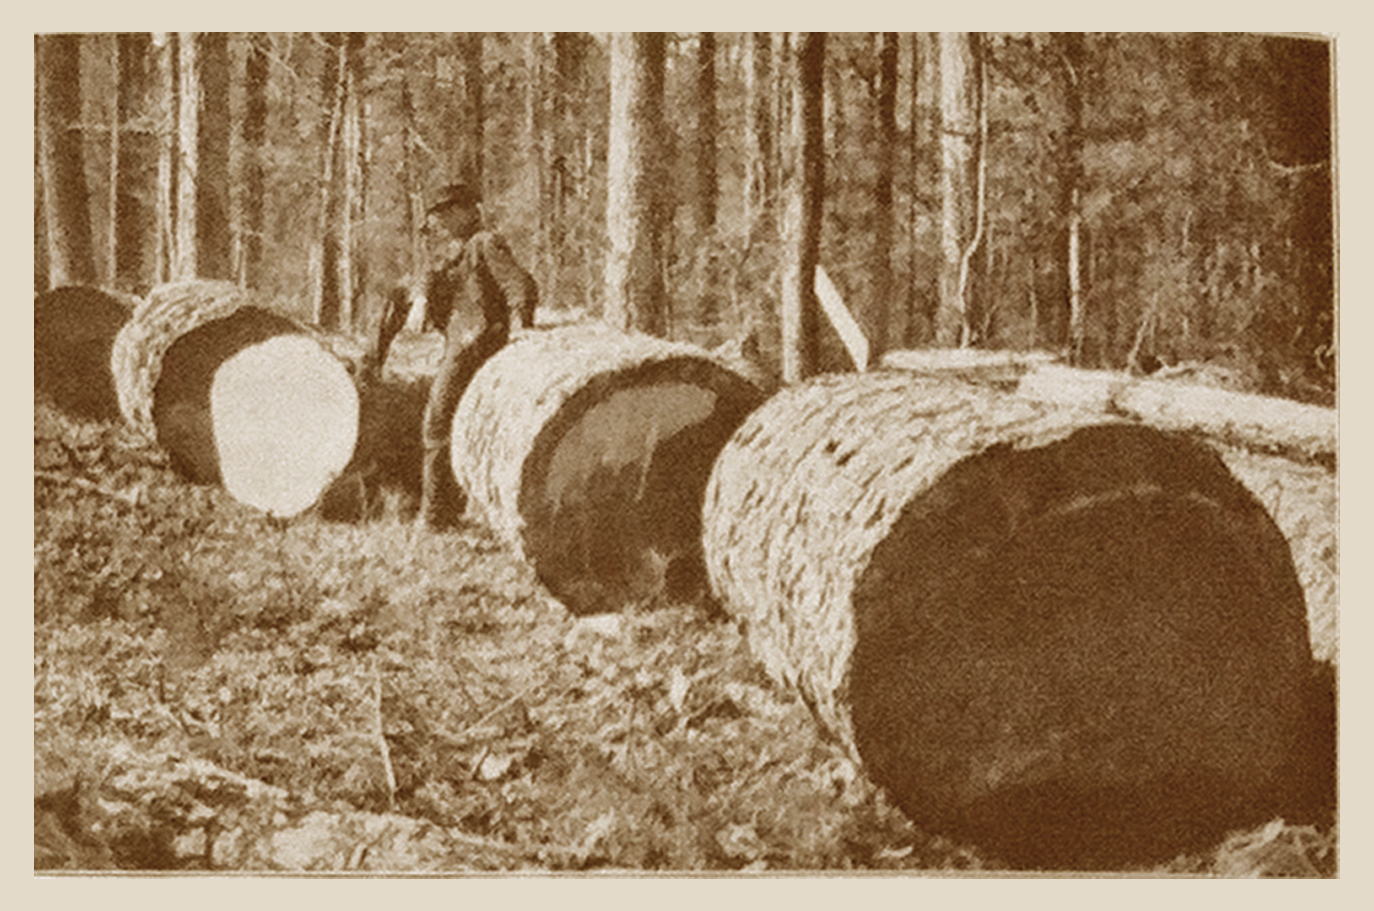 Shortleaf Pine Logs (1909)